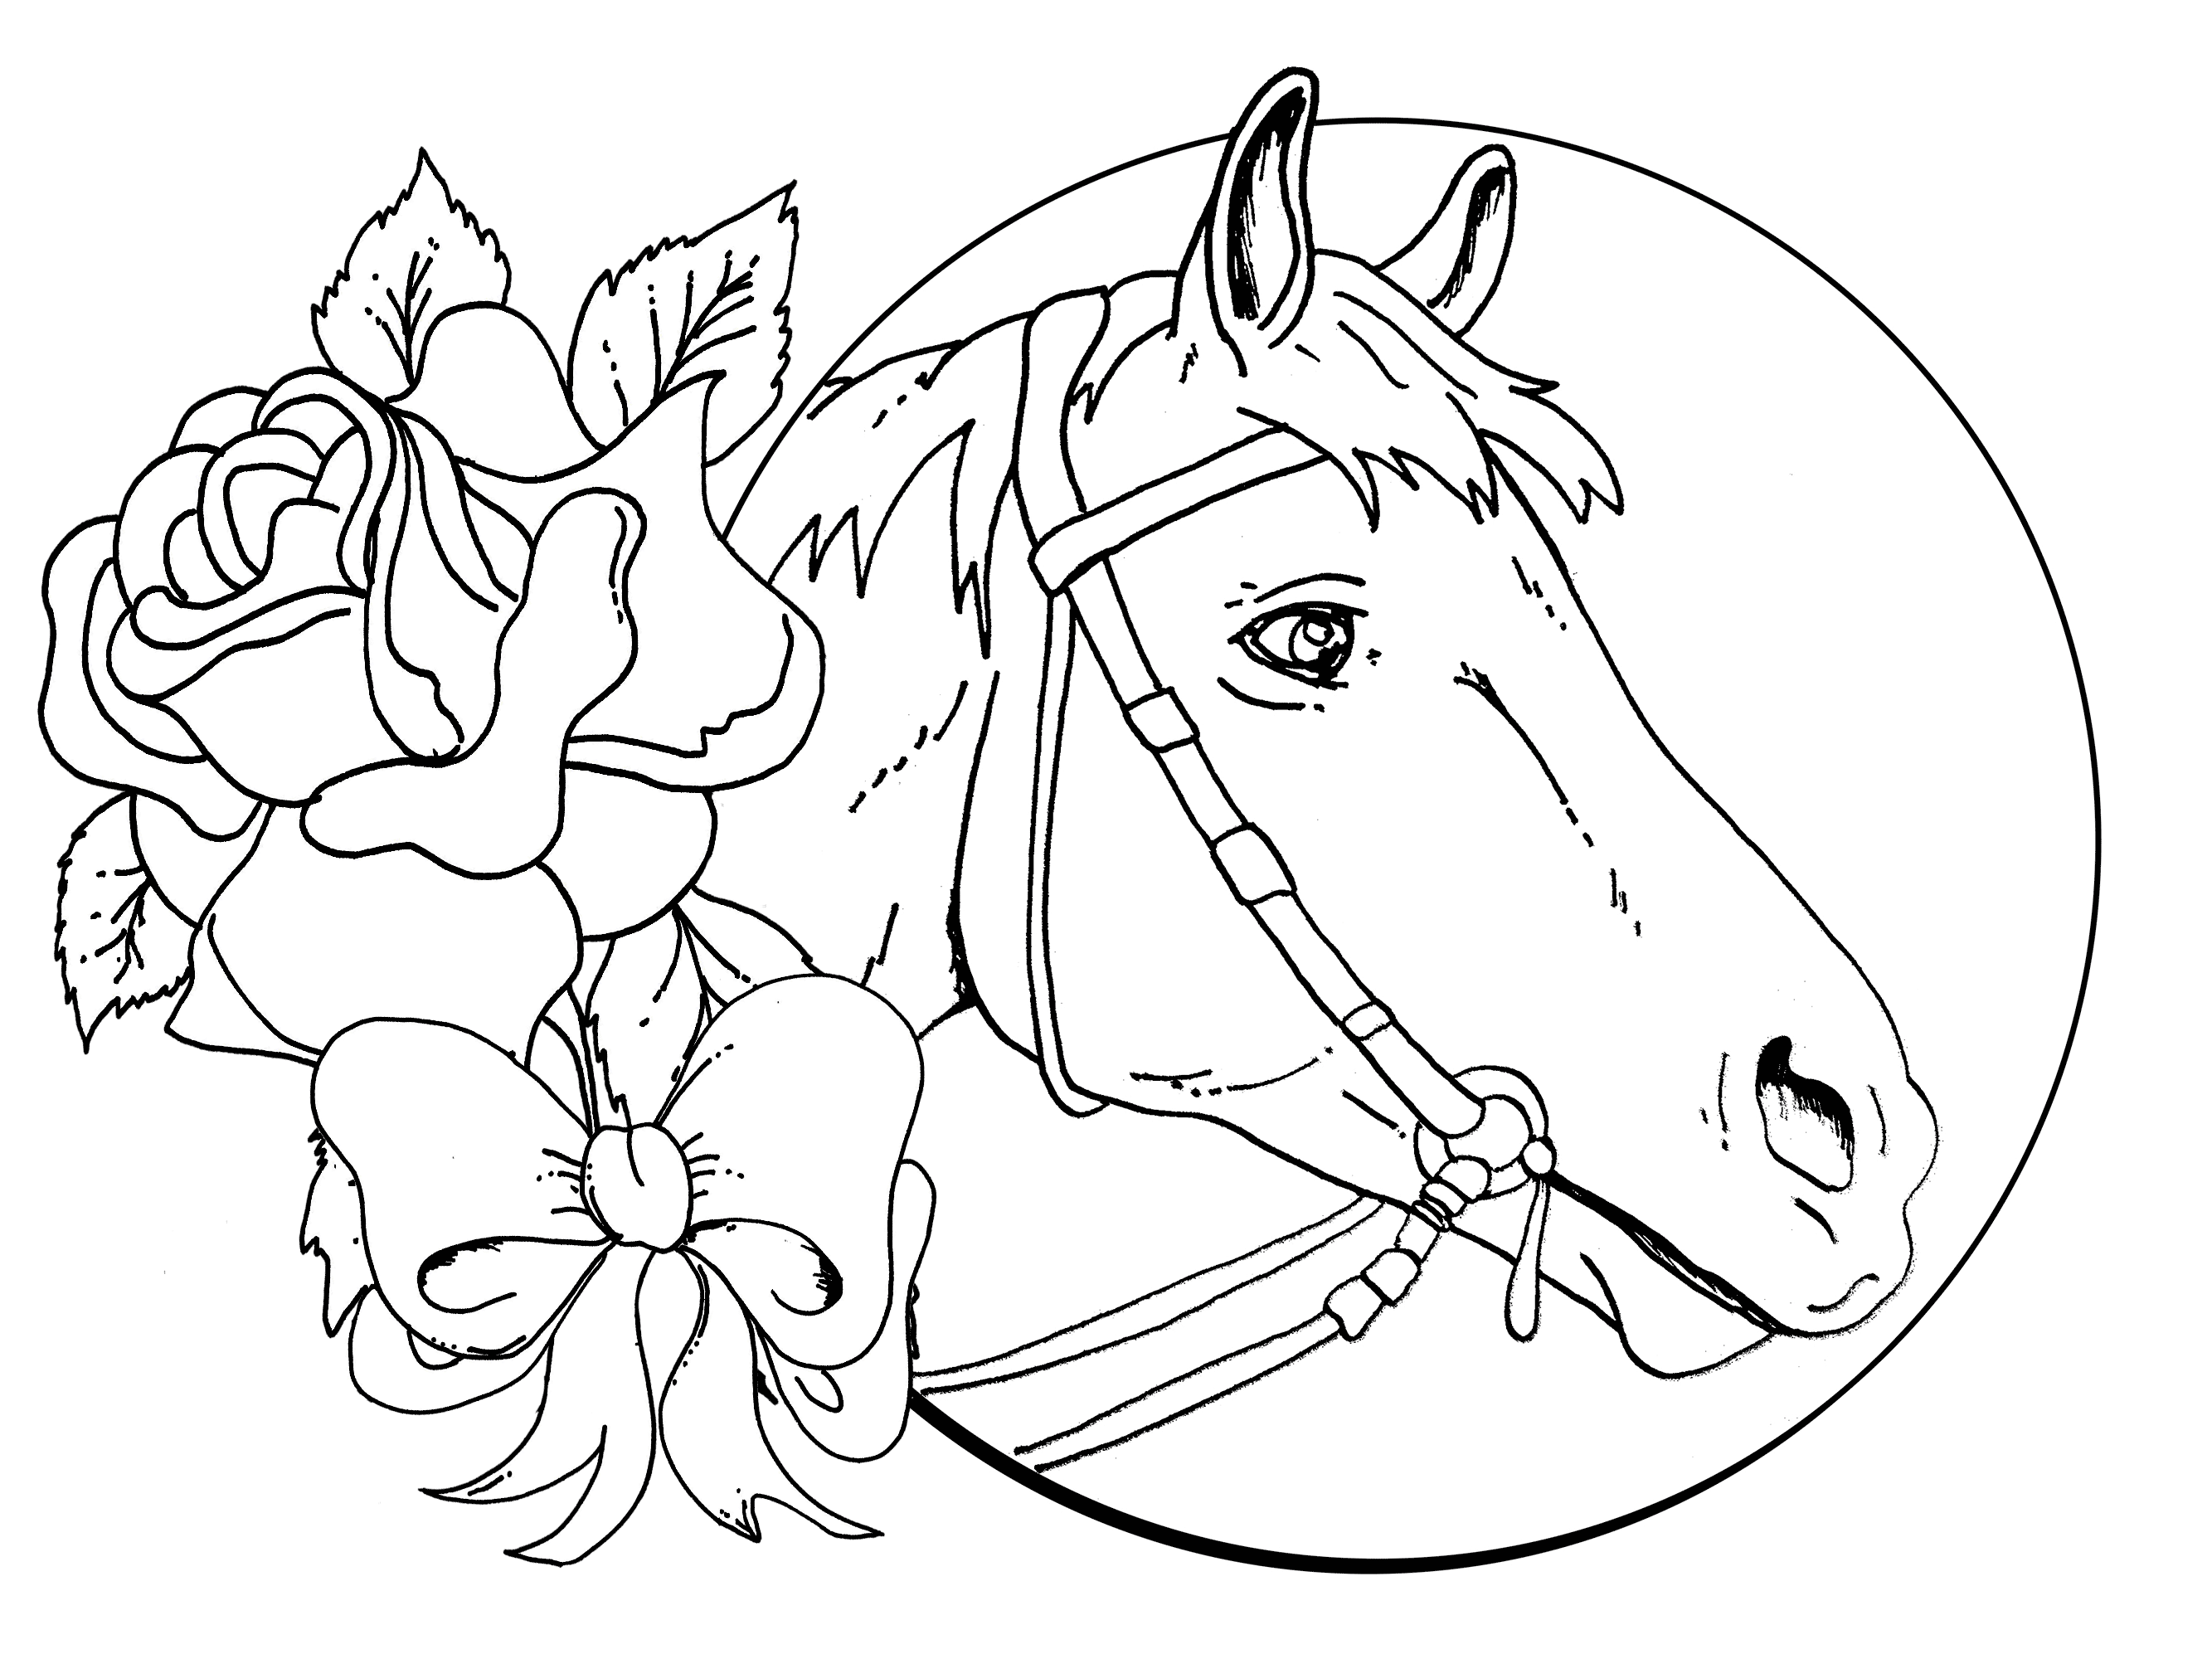 Horse Coloring Pages For Girls Free Coloring Pages Rose Coloring Pages Animal Coloring Pages Horse Coloring Pages